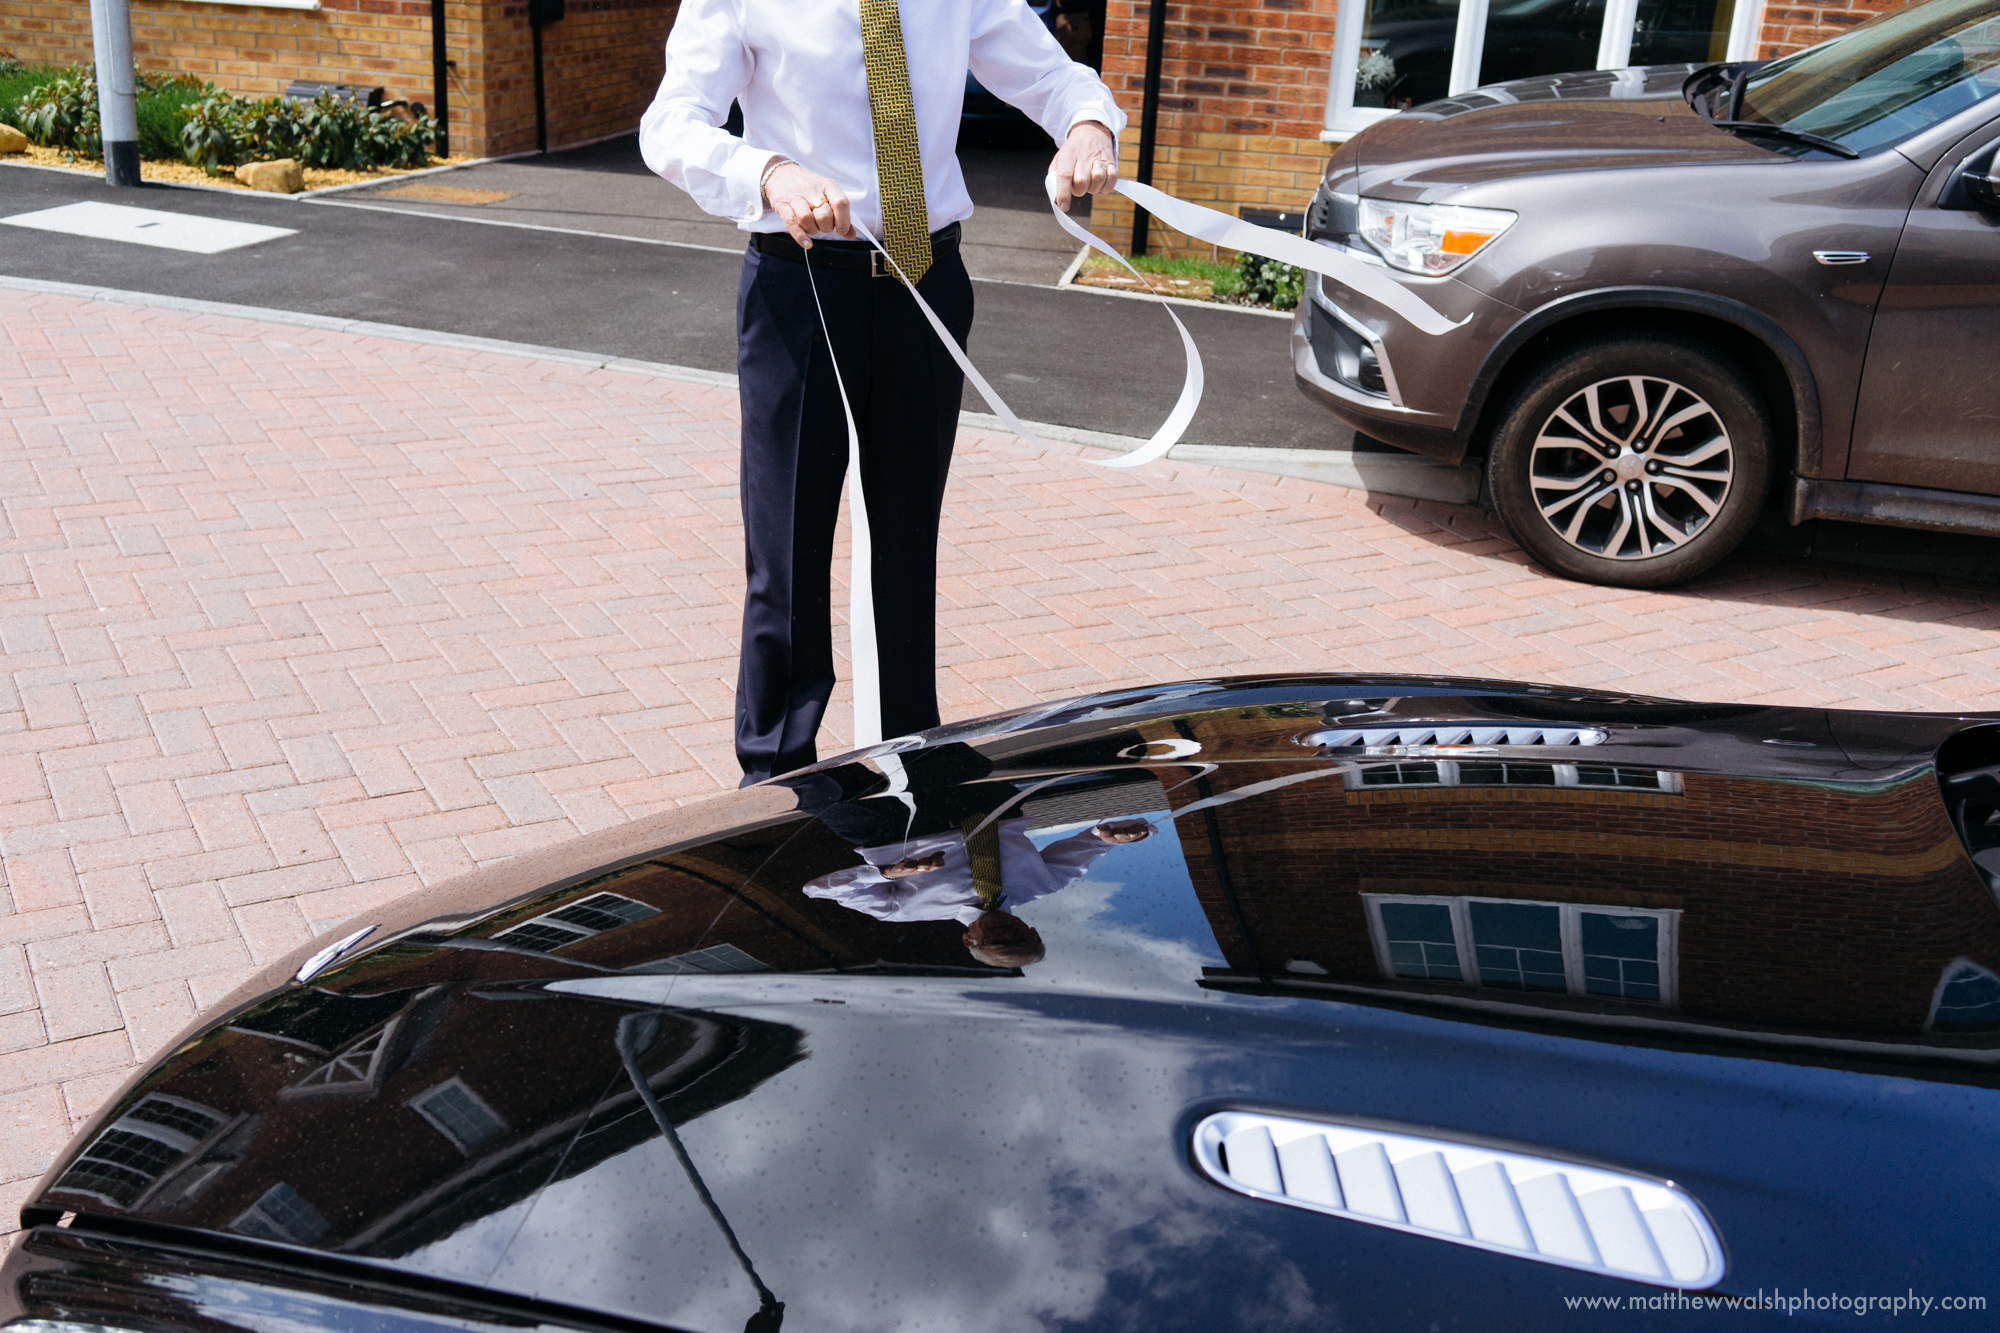 The father of the bride struggling with the ribbon that he is trying to put on the wedding car